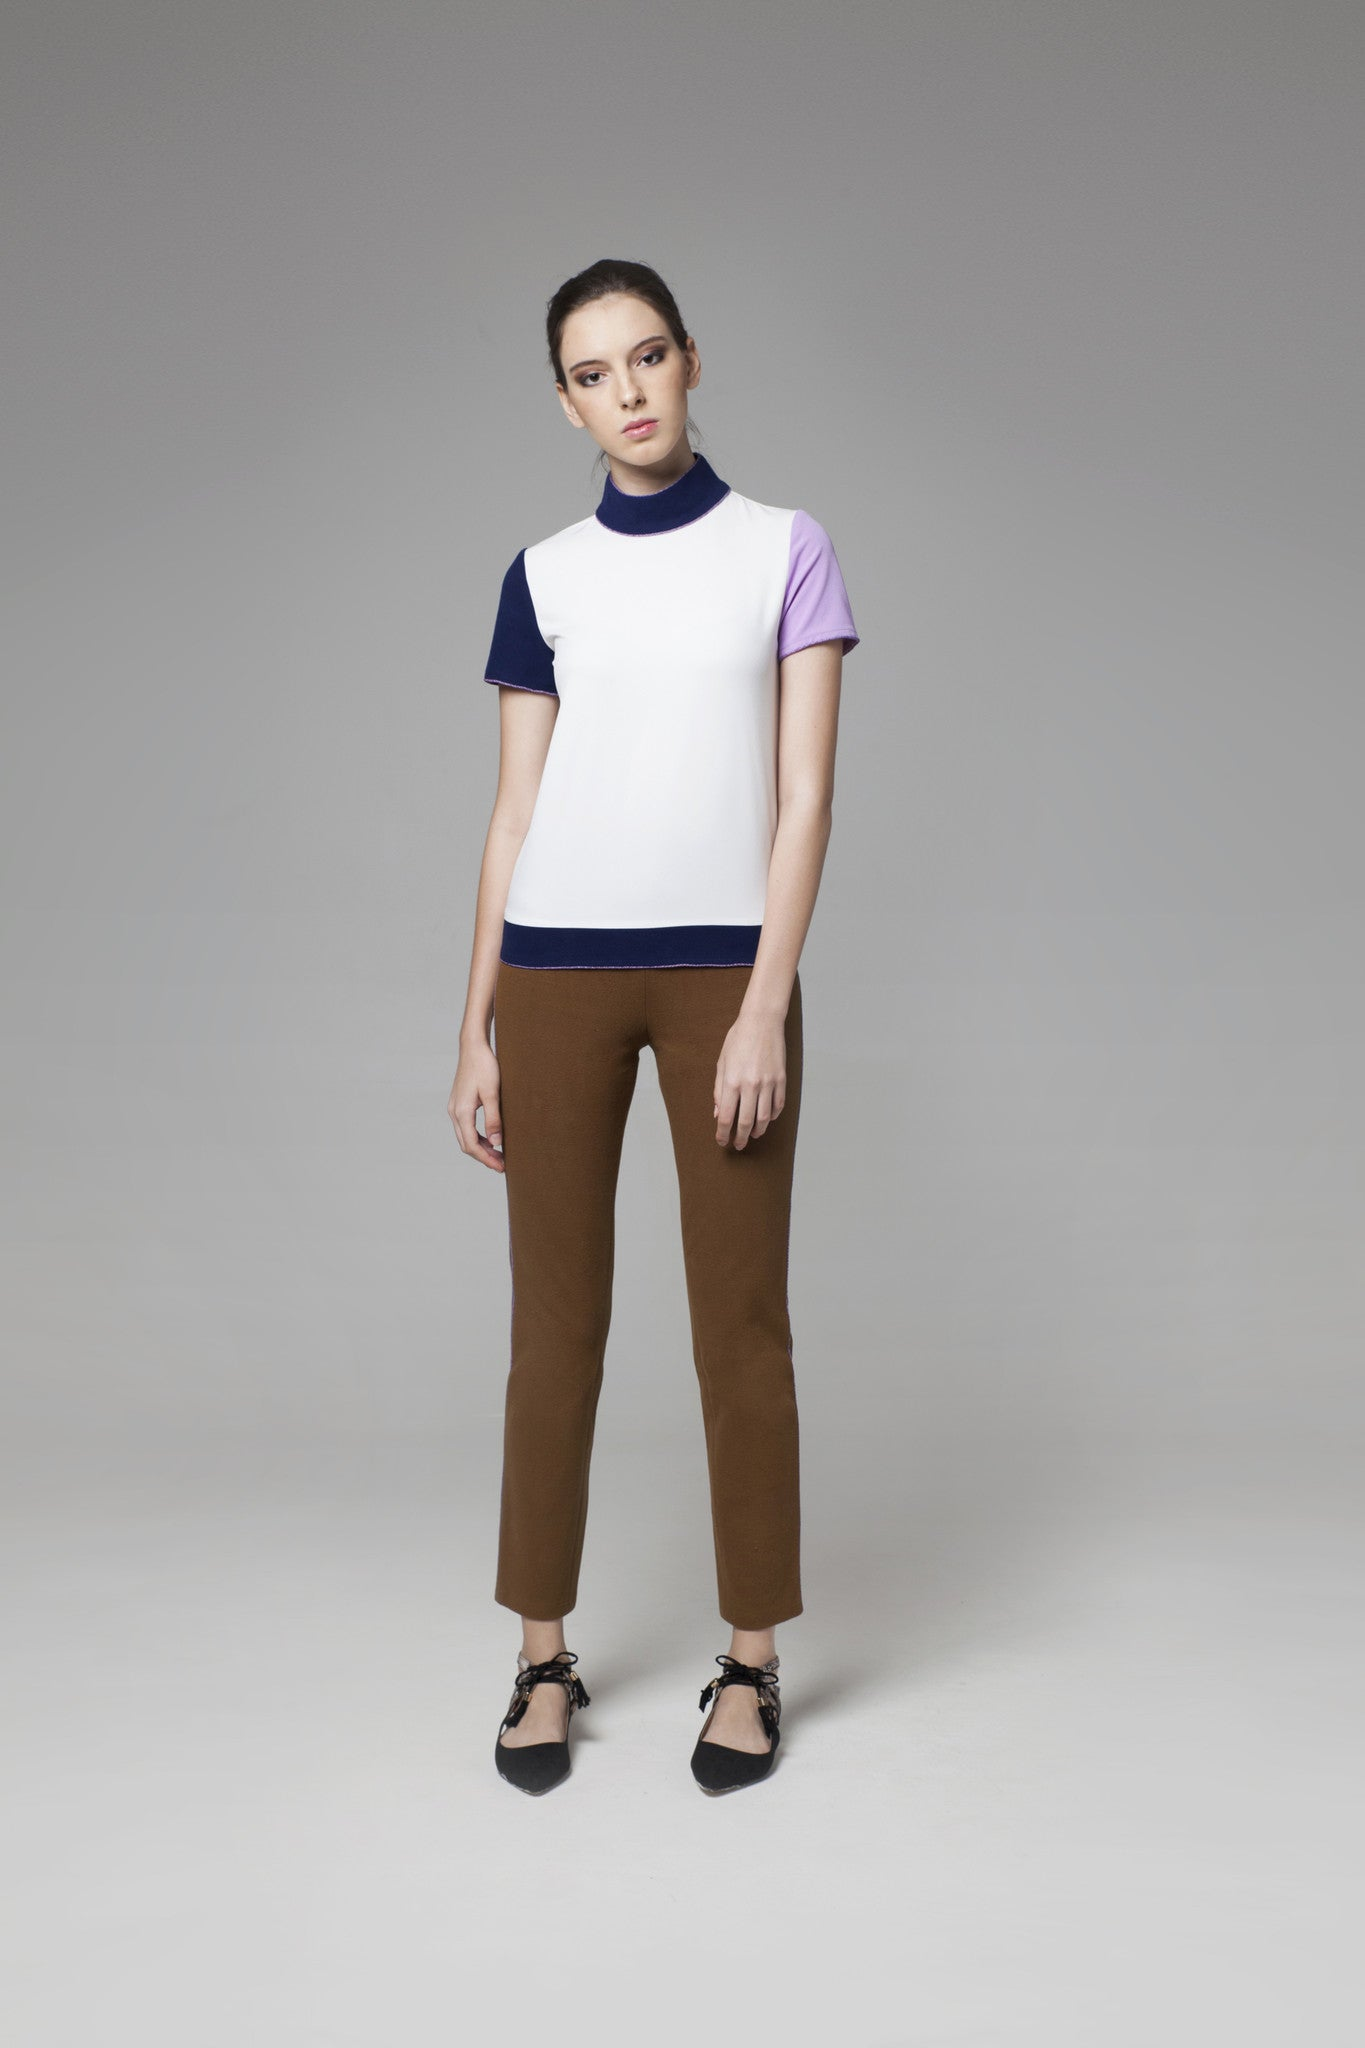 Triple Tone Color Block Top - GlanceZ   - 1